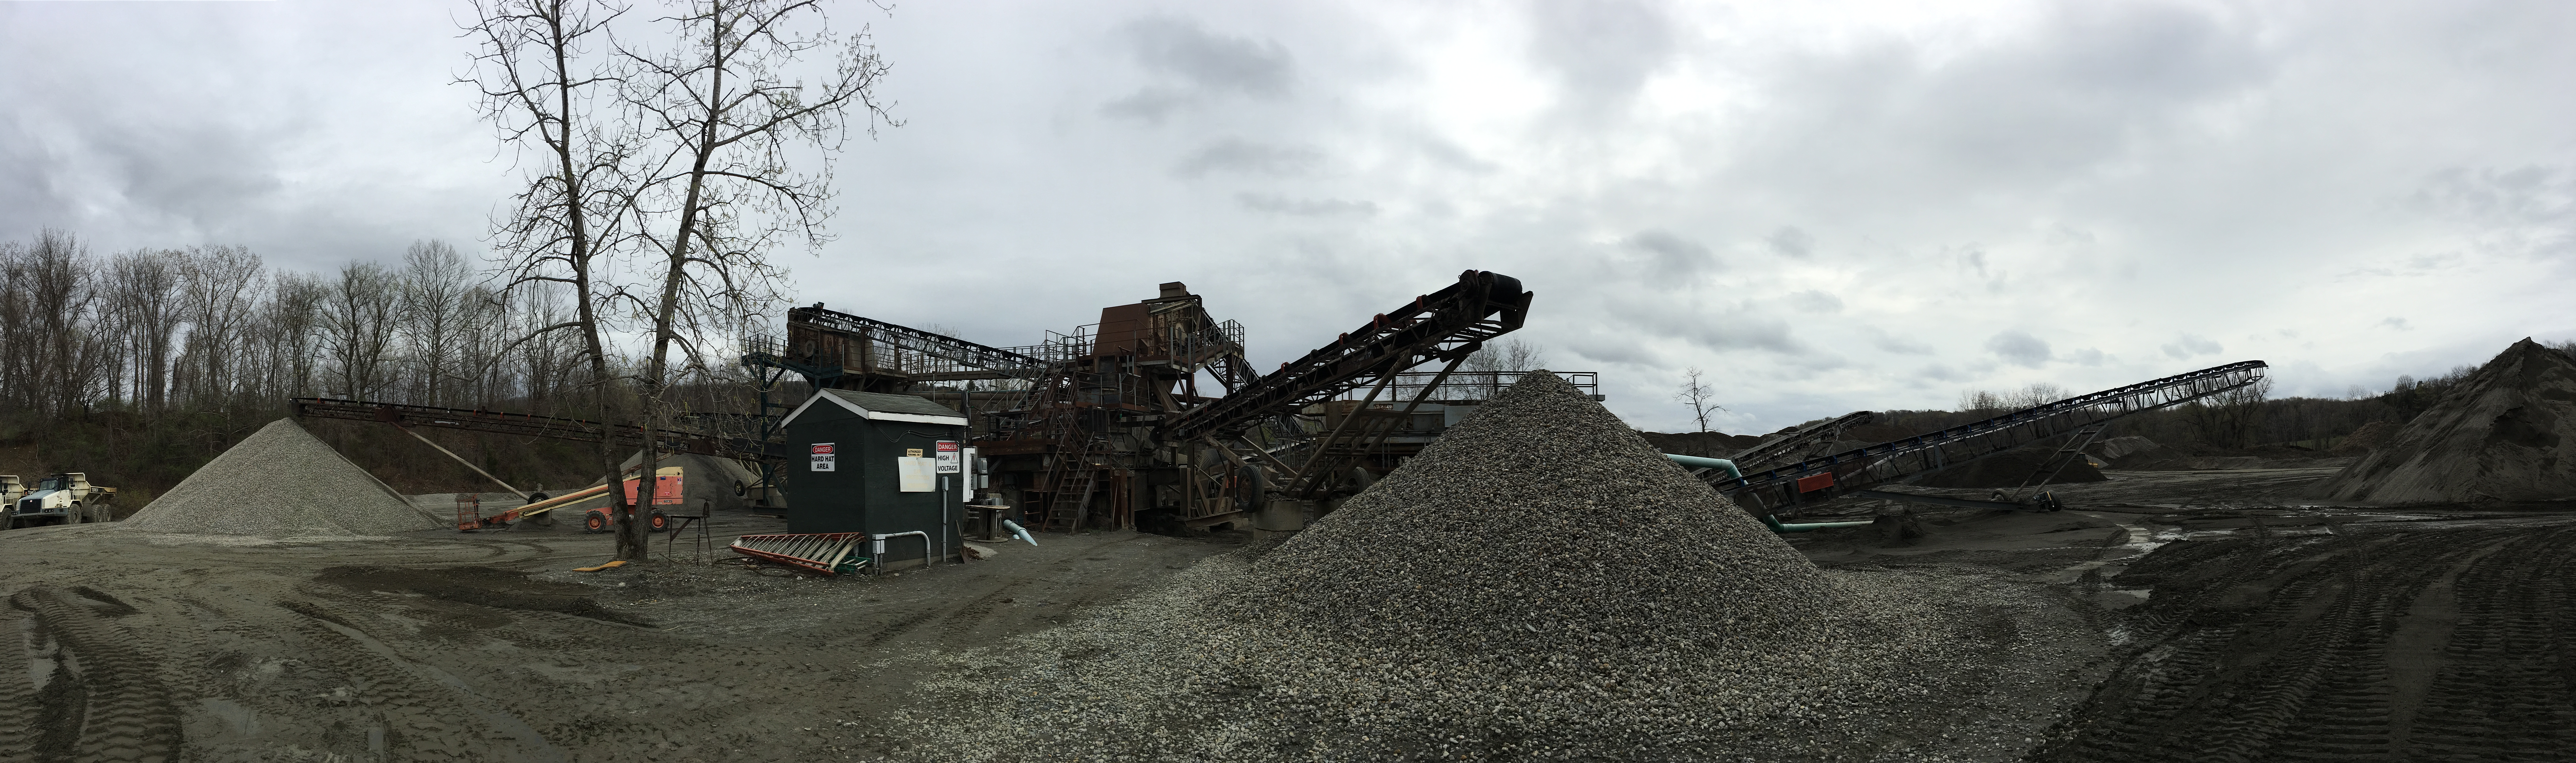 Sand and Gravel Plant